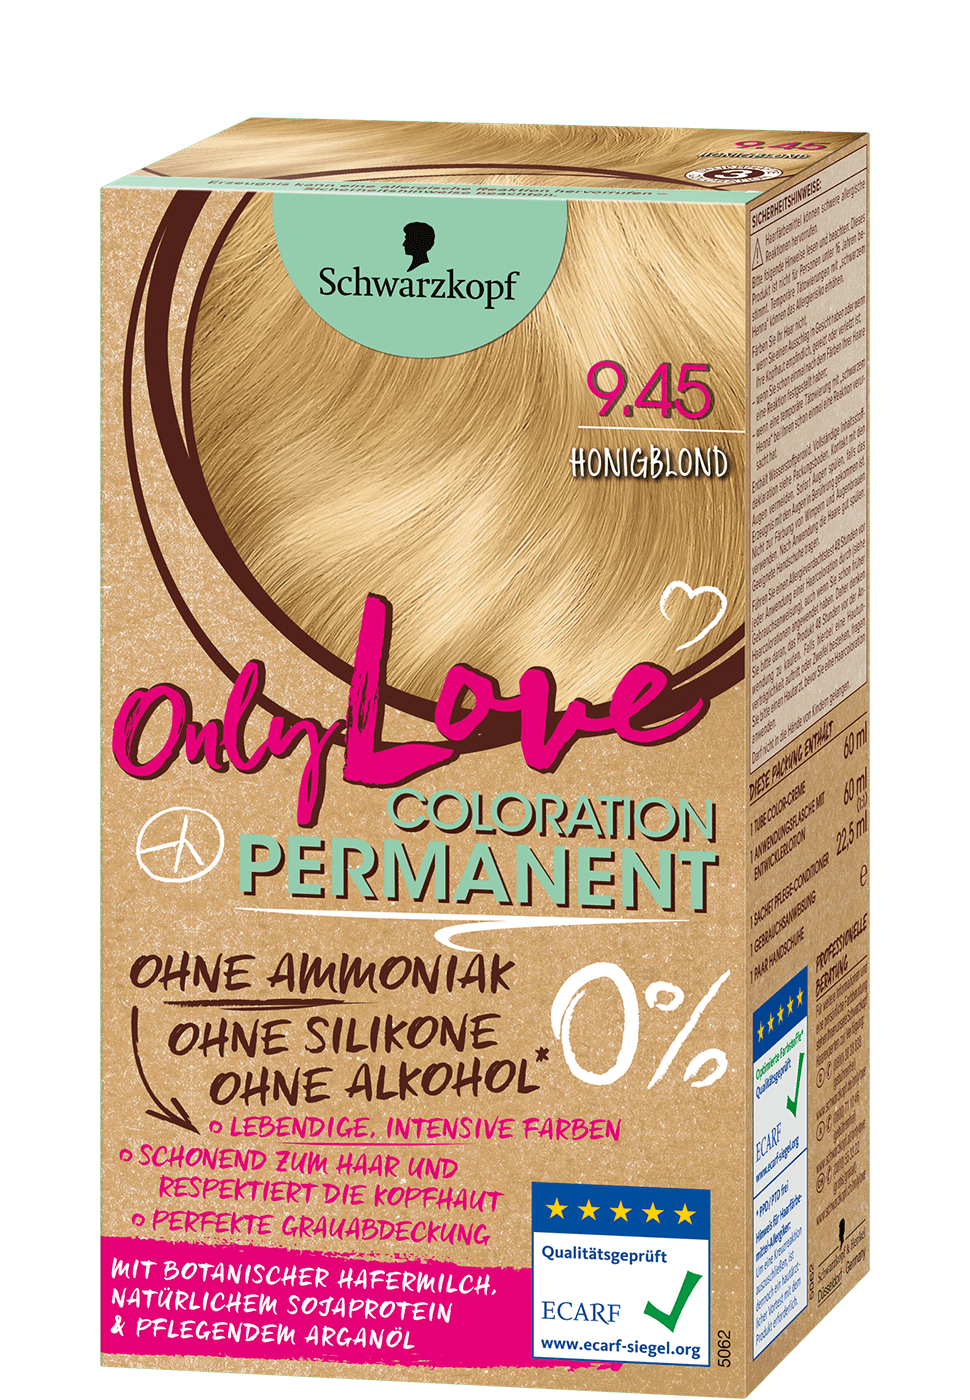 only_love_de_coloration_permanent_9_45_honigblond_970x1400